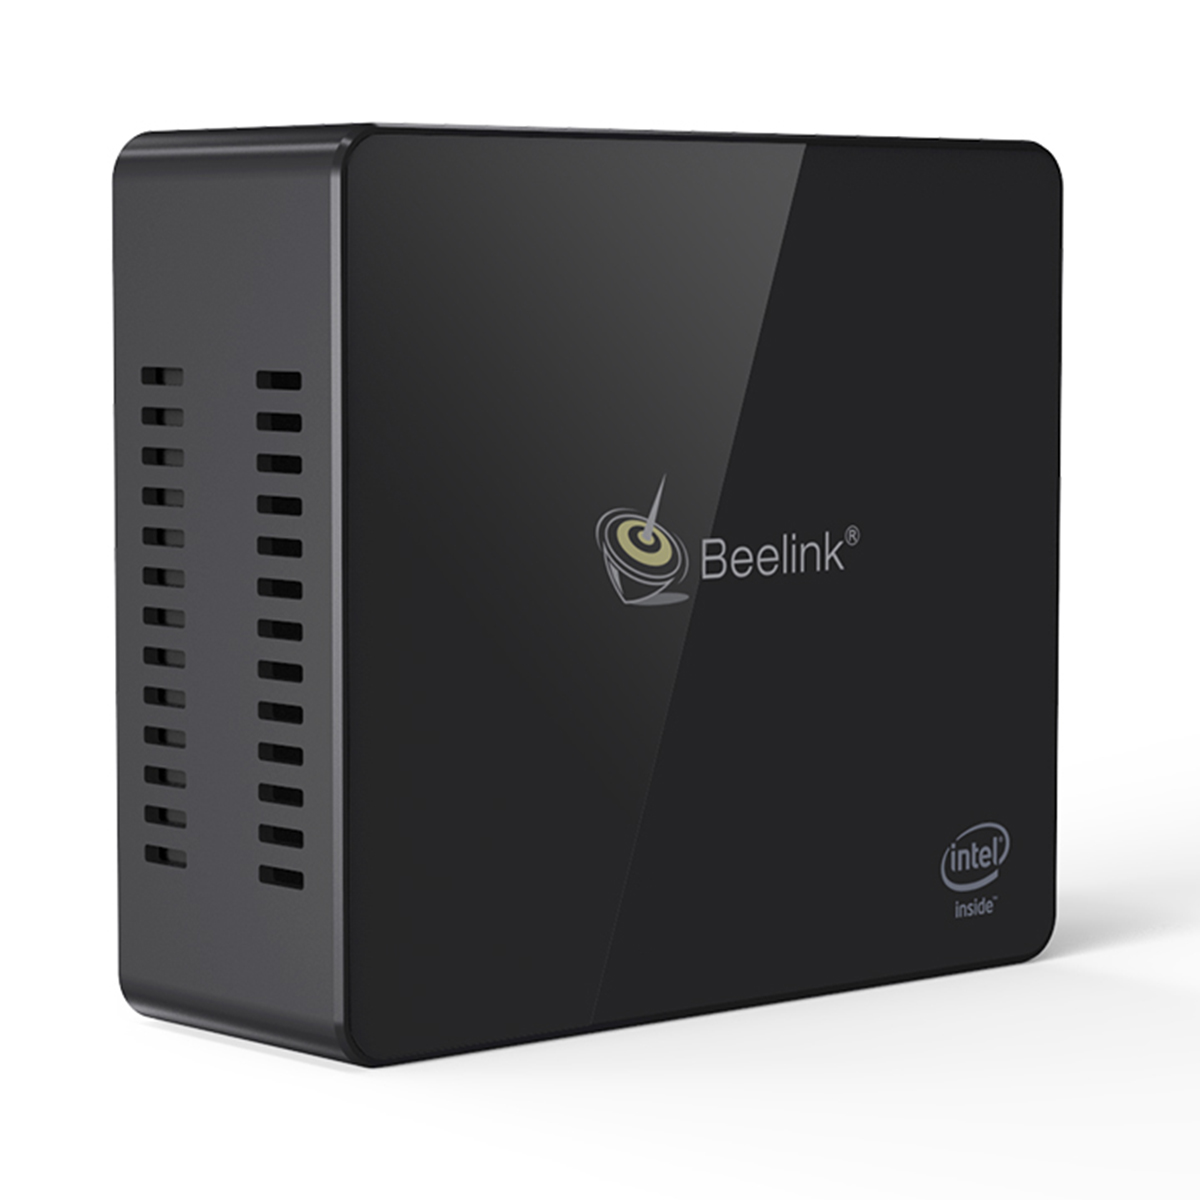 Beelink Gemini X55 Ultimate Mini PC Windows 10 Intel J5005 8GB DDR4 128GB SSD 2.4G 5.8G WiFi 1000Mbps LAN Bluetooth PK S2